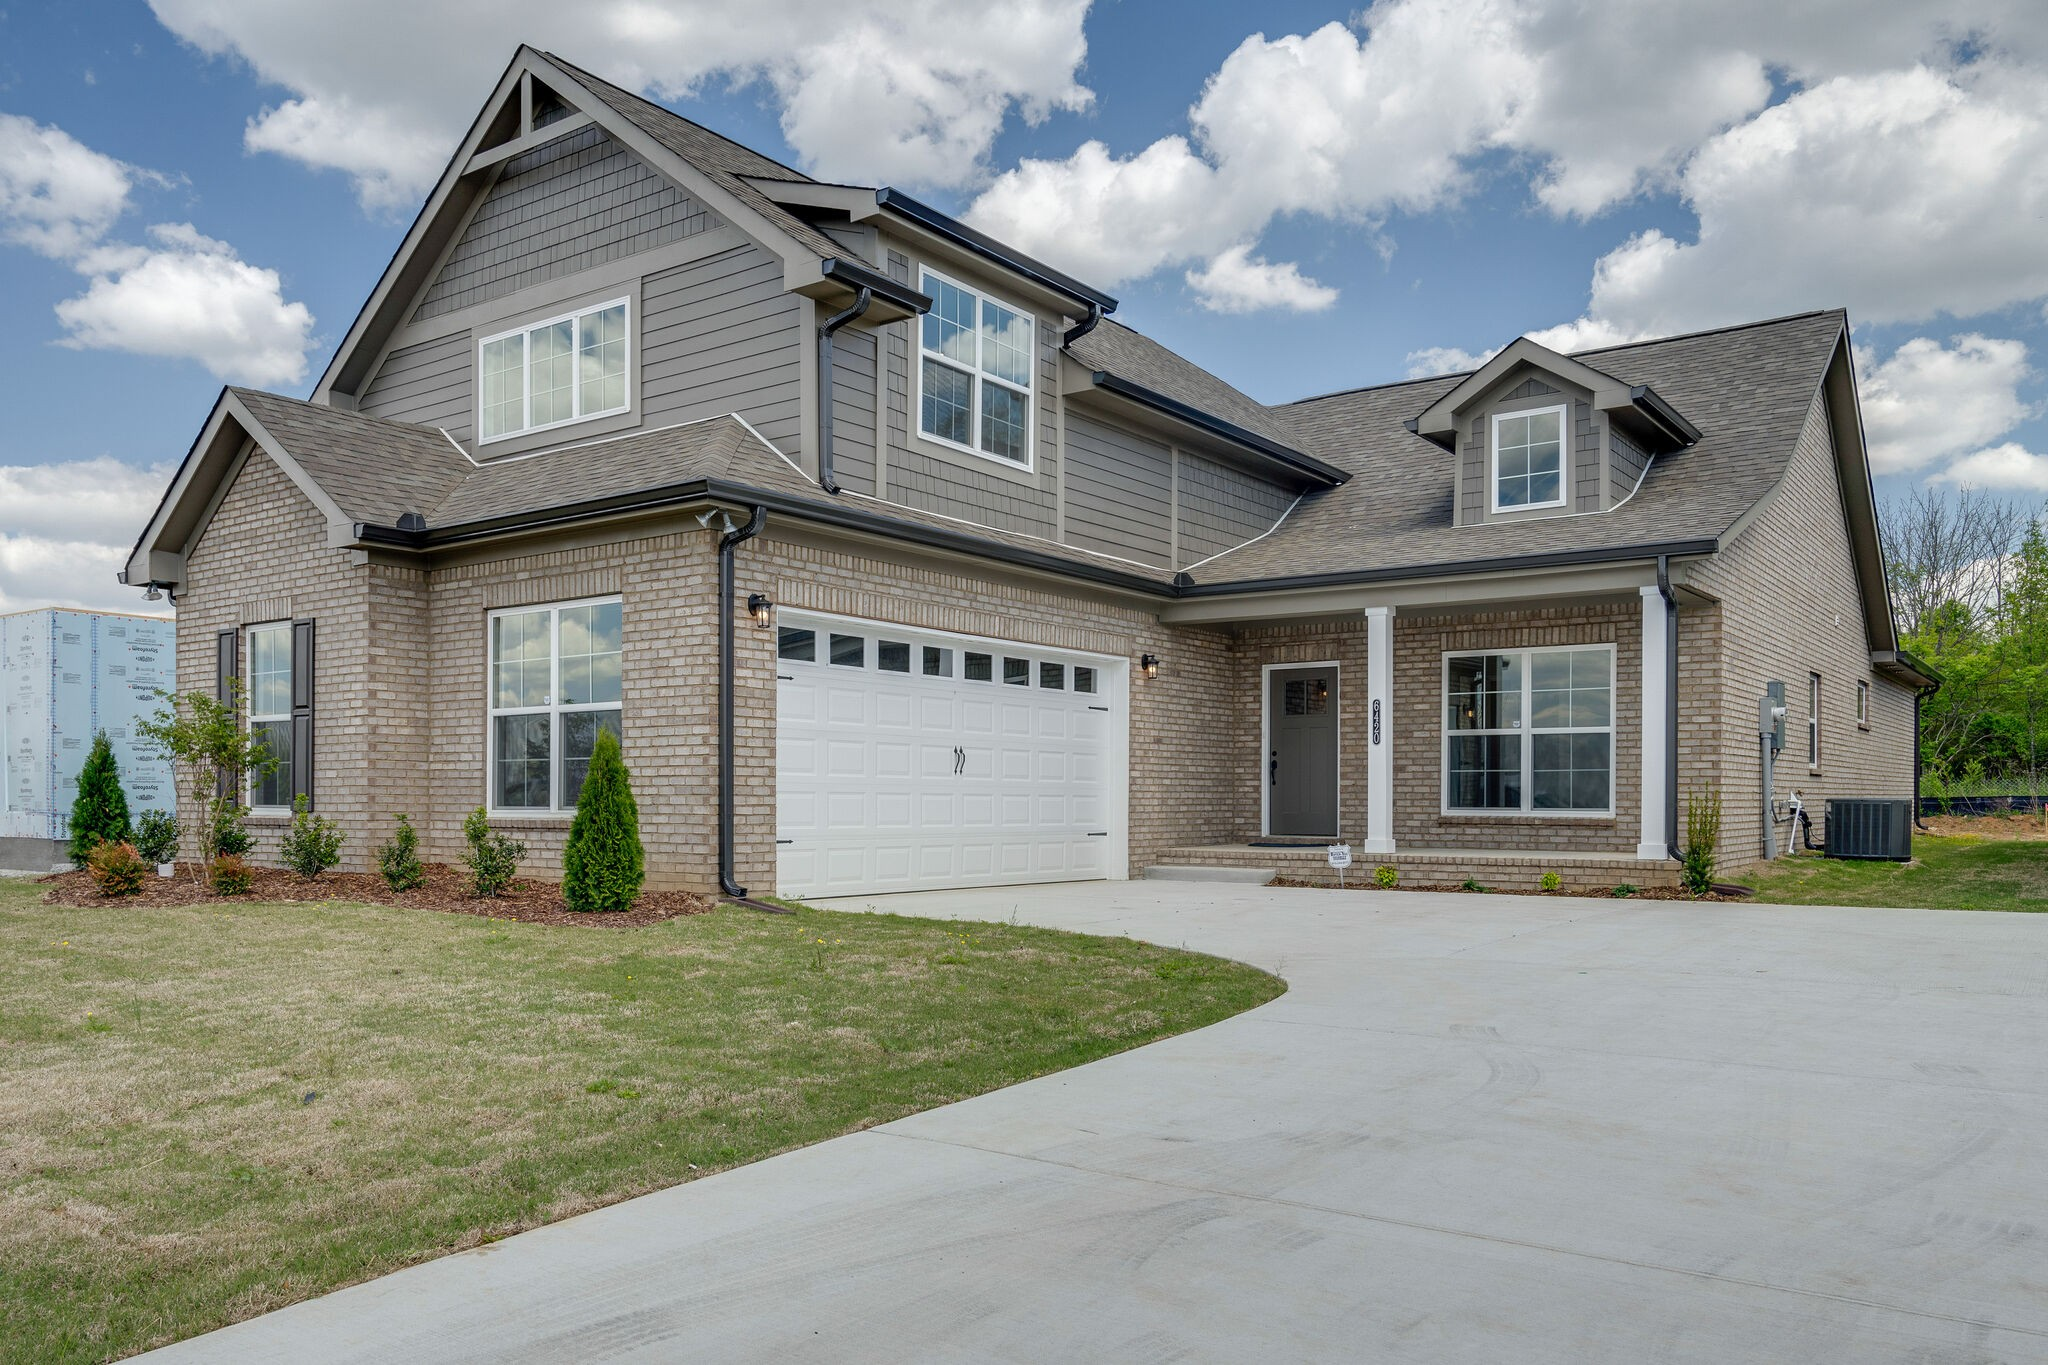 6404 Armstrong Dr Property Photo - Hermitage, TN real estate listing